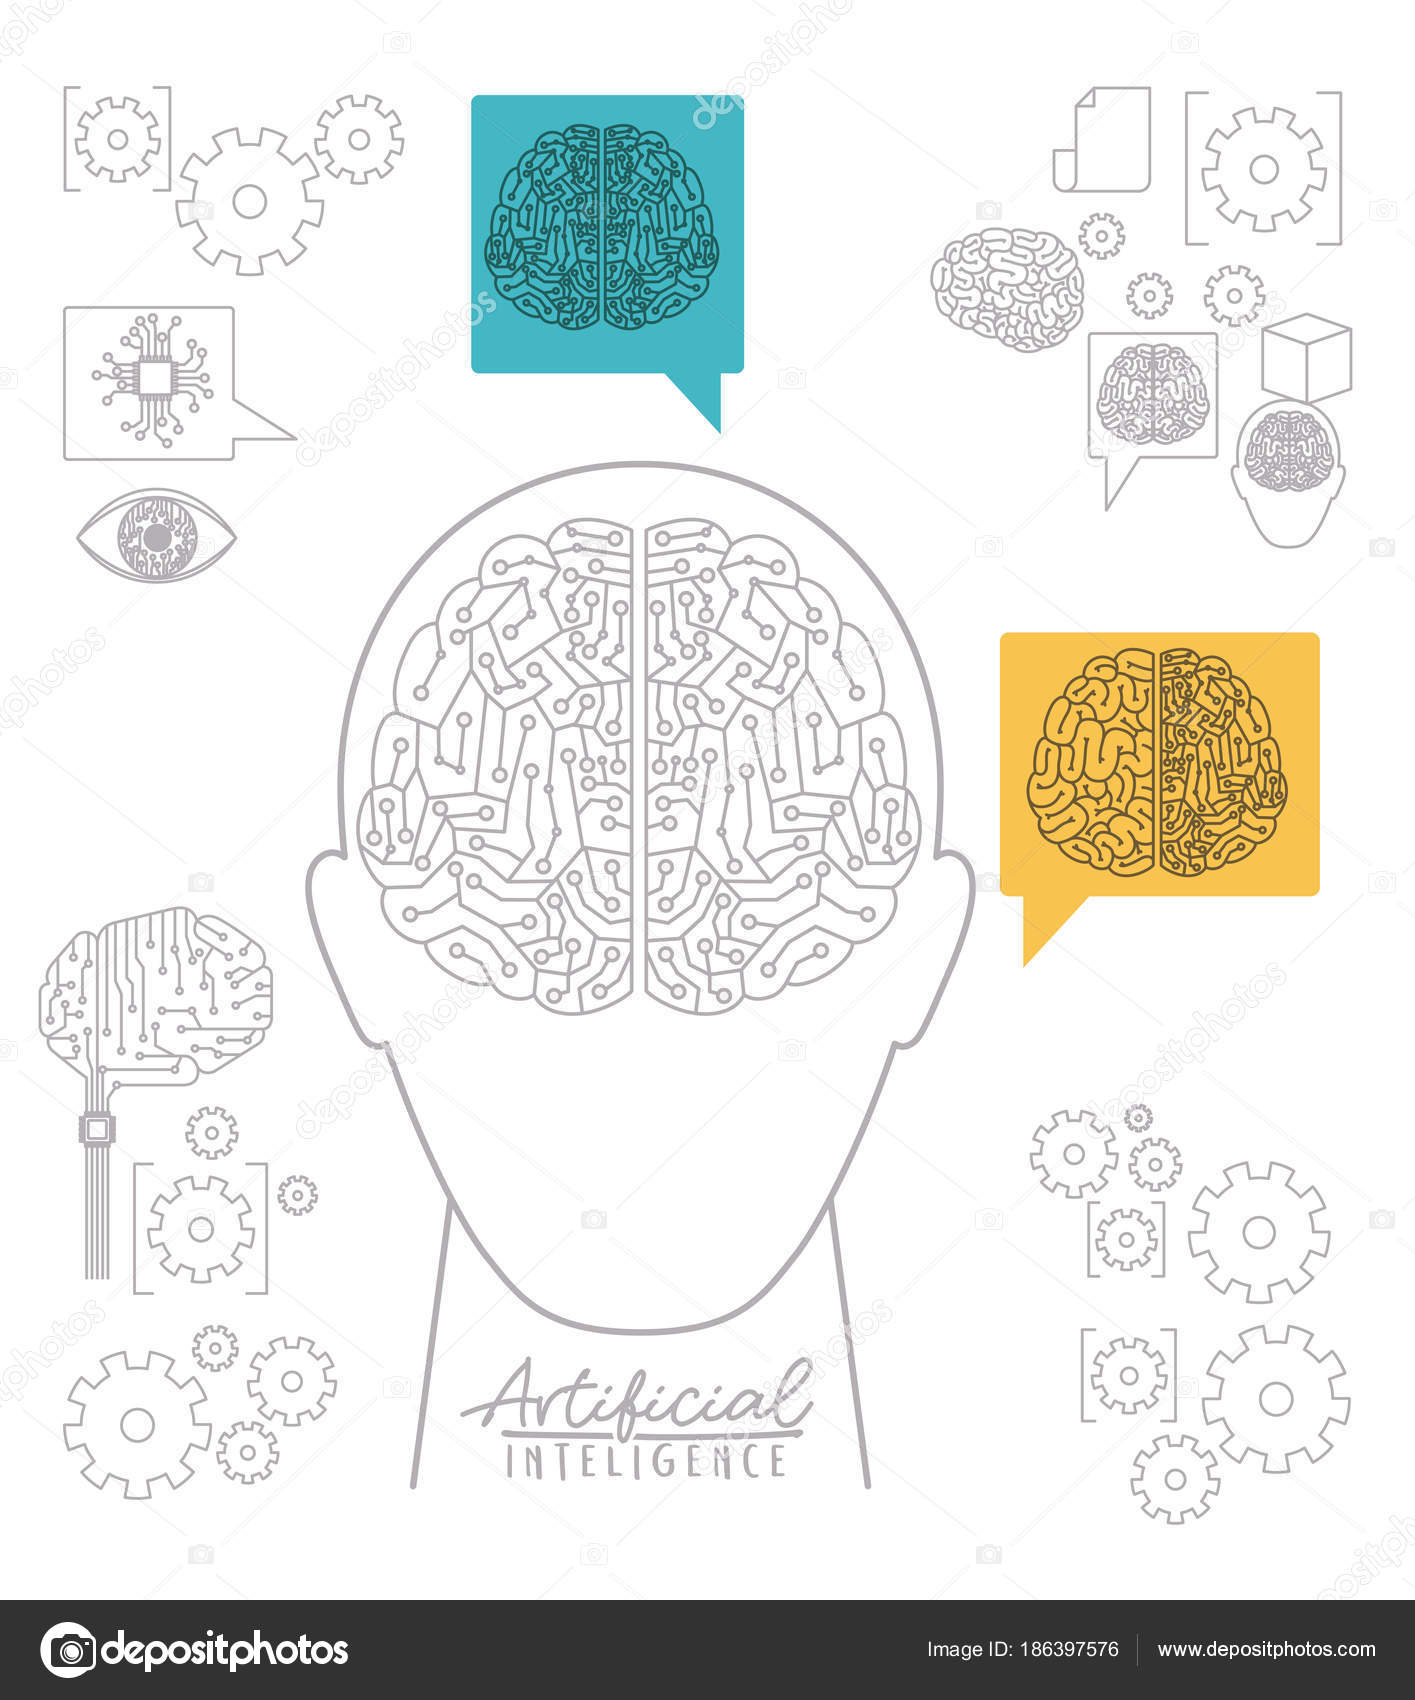 Artificial Intelligence Poster With Human Head Silhouette Front View Electronic Circuit Book In Shape Of Brain Over White Background Vector Illustration